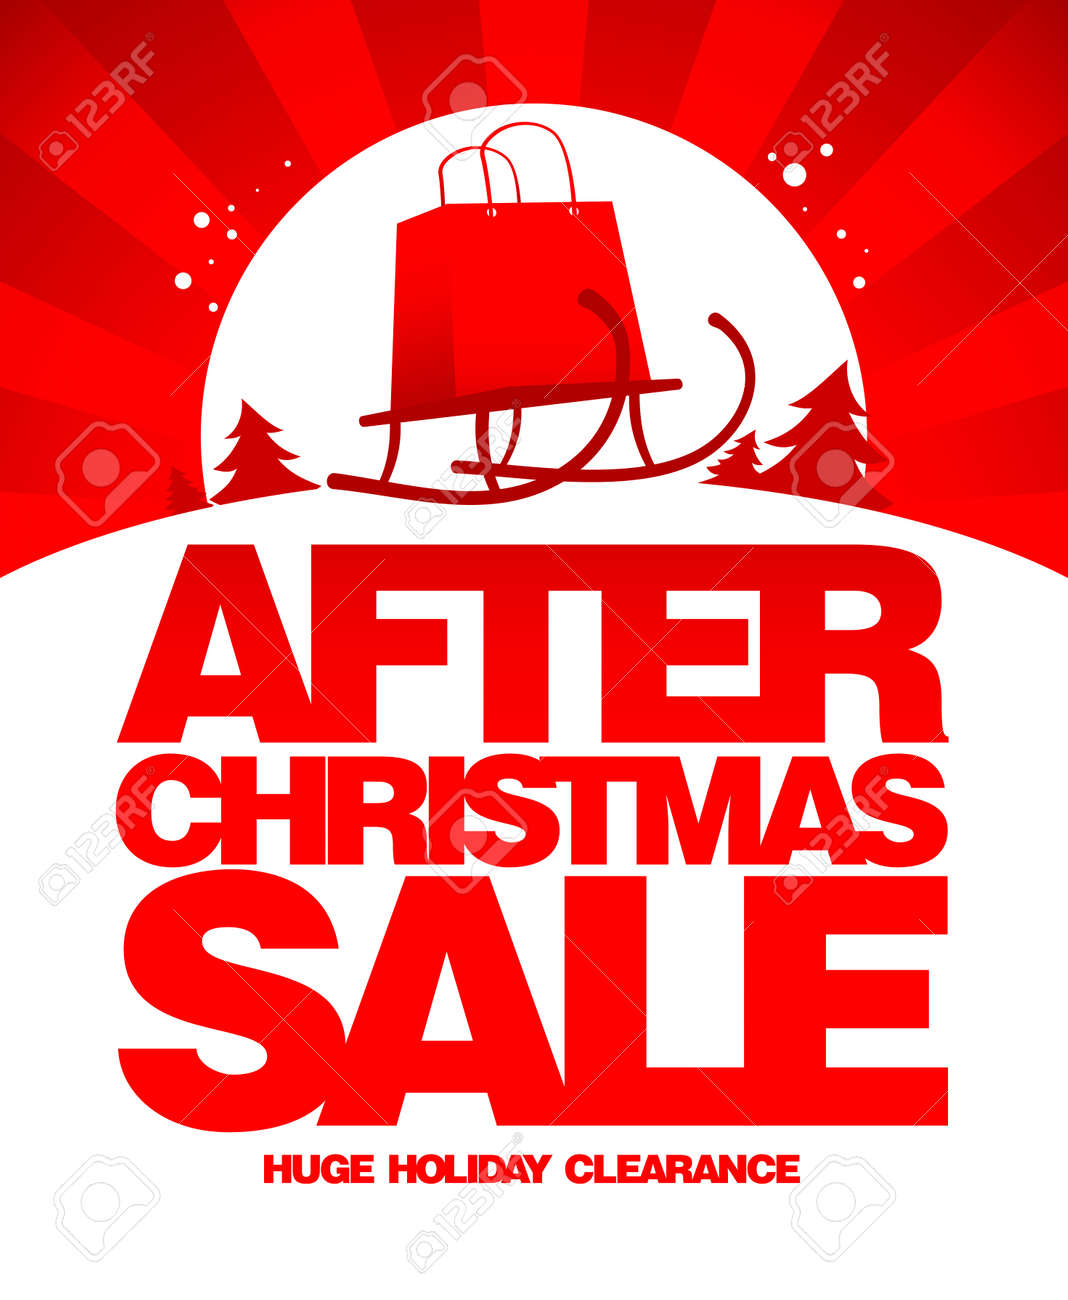 After Christmas Sale Design Template With Shopping Bag On A Sled ...